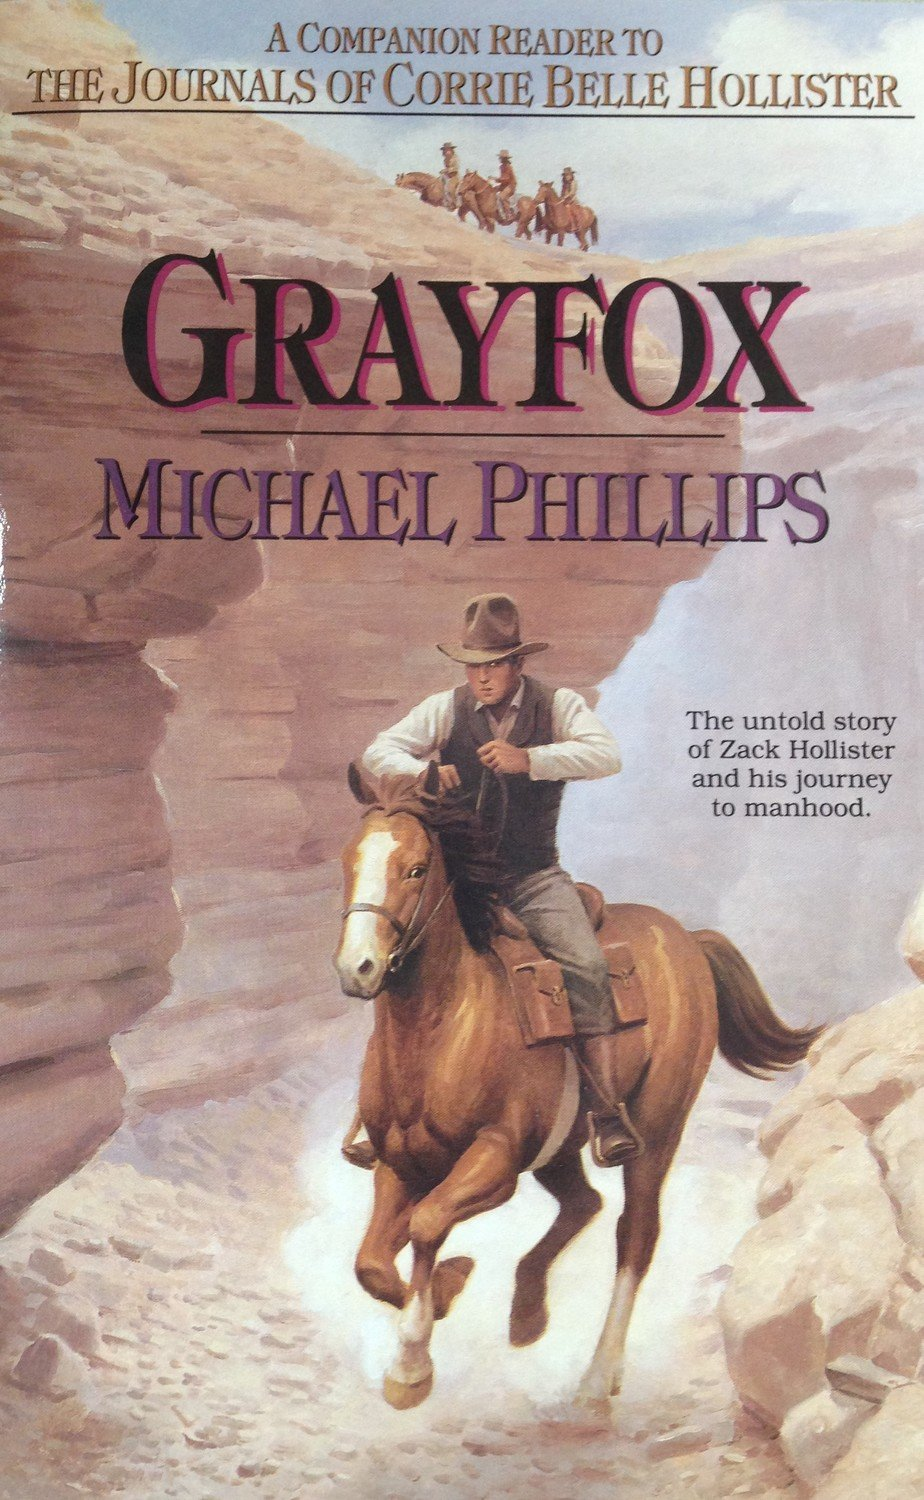 Grayfox:  The untold story of Zack Hollister and his journey to manhood by Michael Phillips